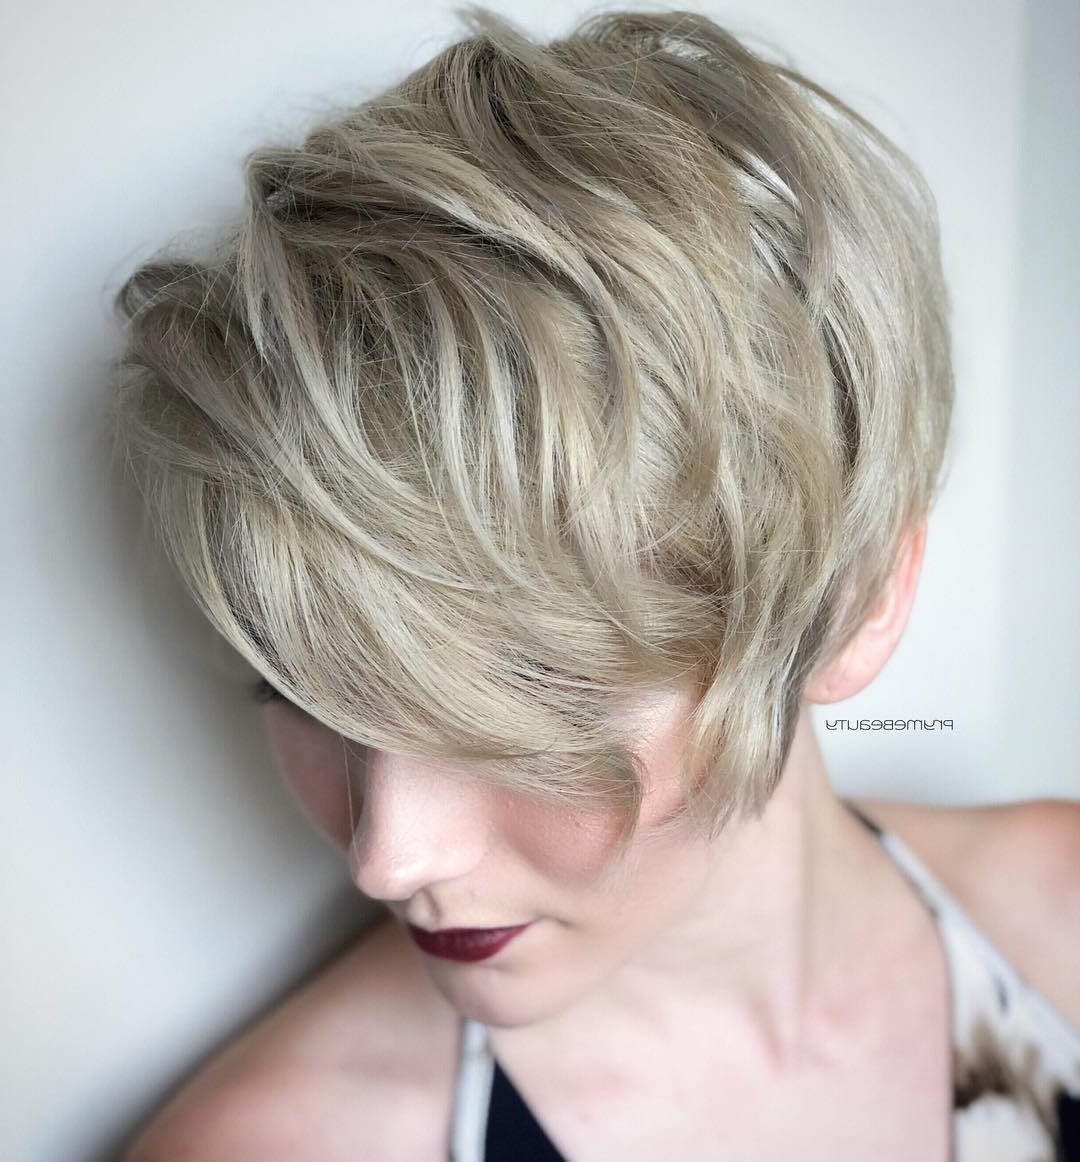 Best And Newest Flippy Layers Hairstyles Pertaining To Top 10 Trendy, Low Maintenance Short Layered Hairstyles (View 6 of 20)